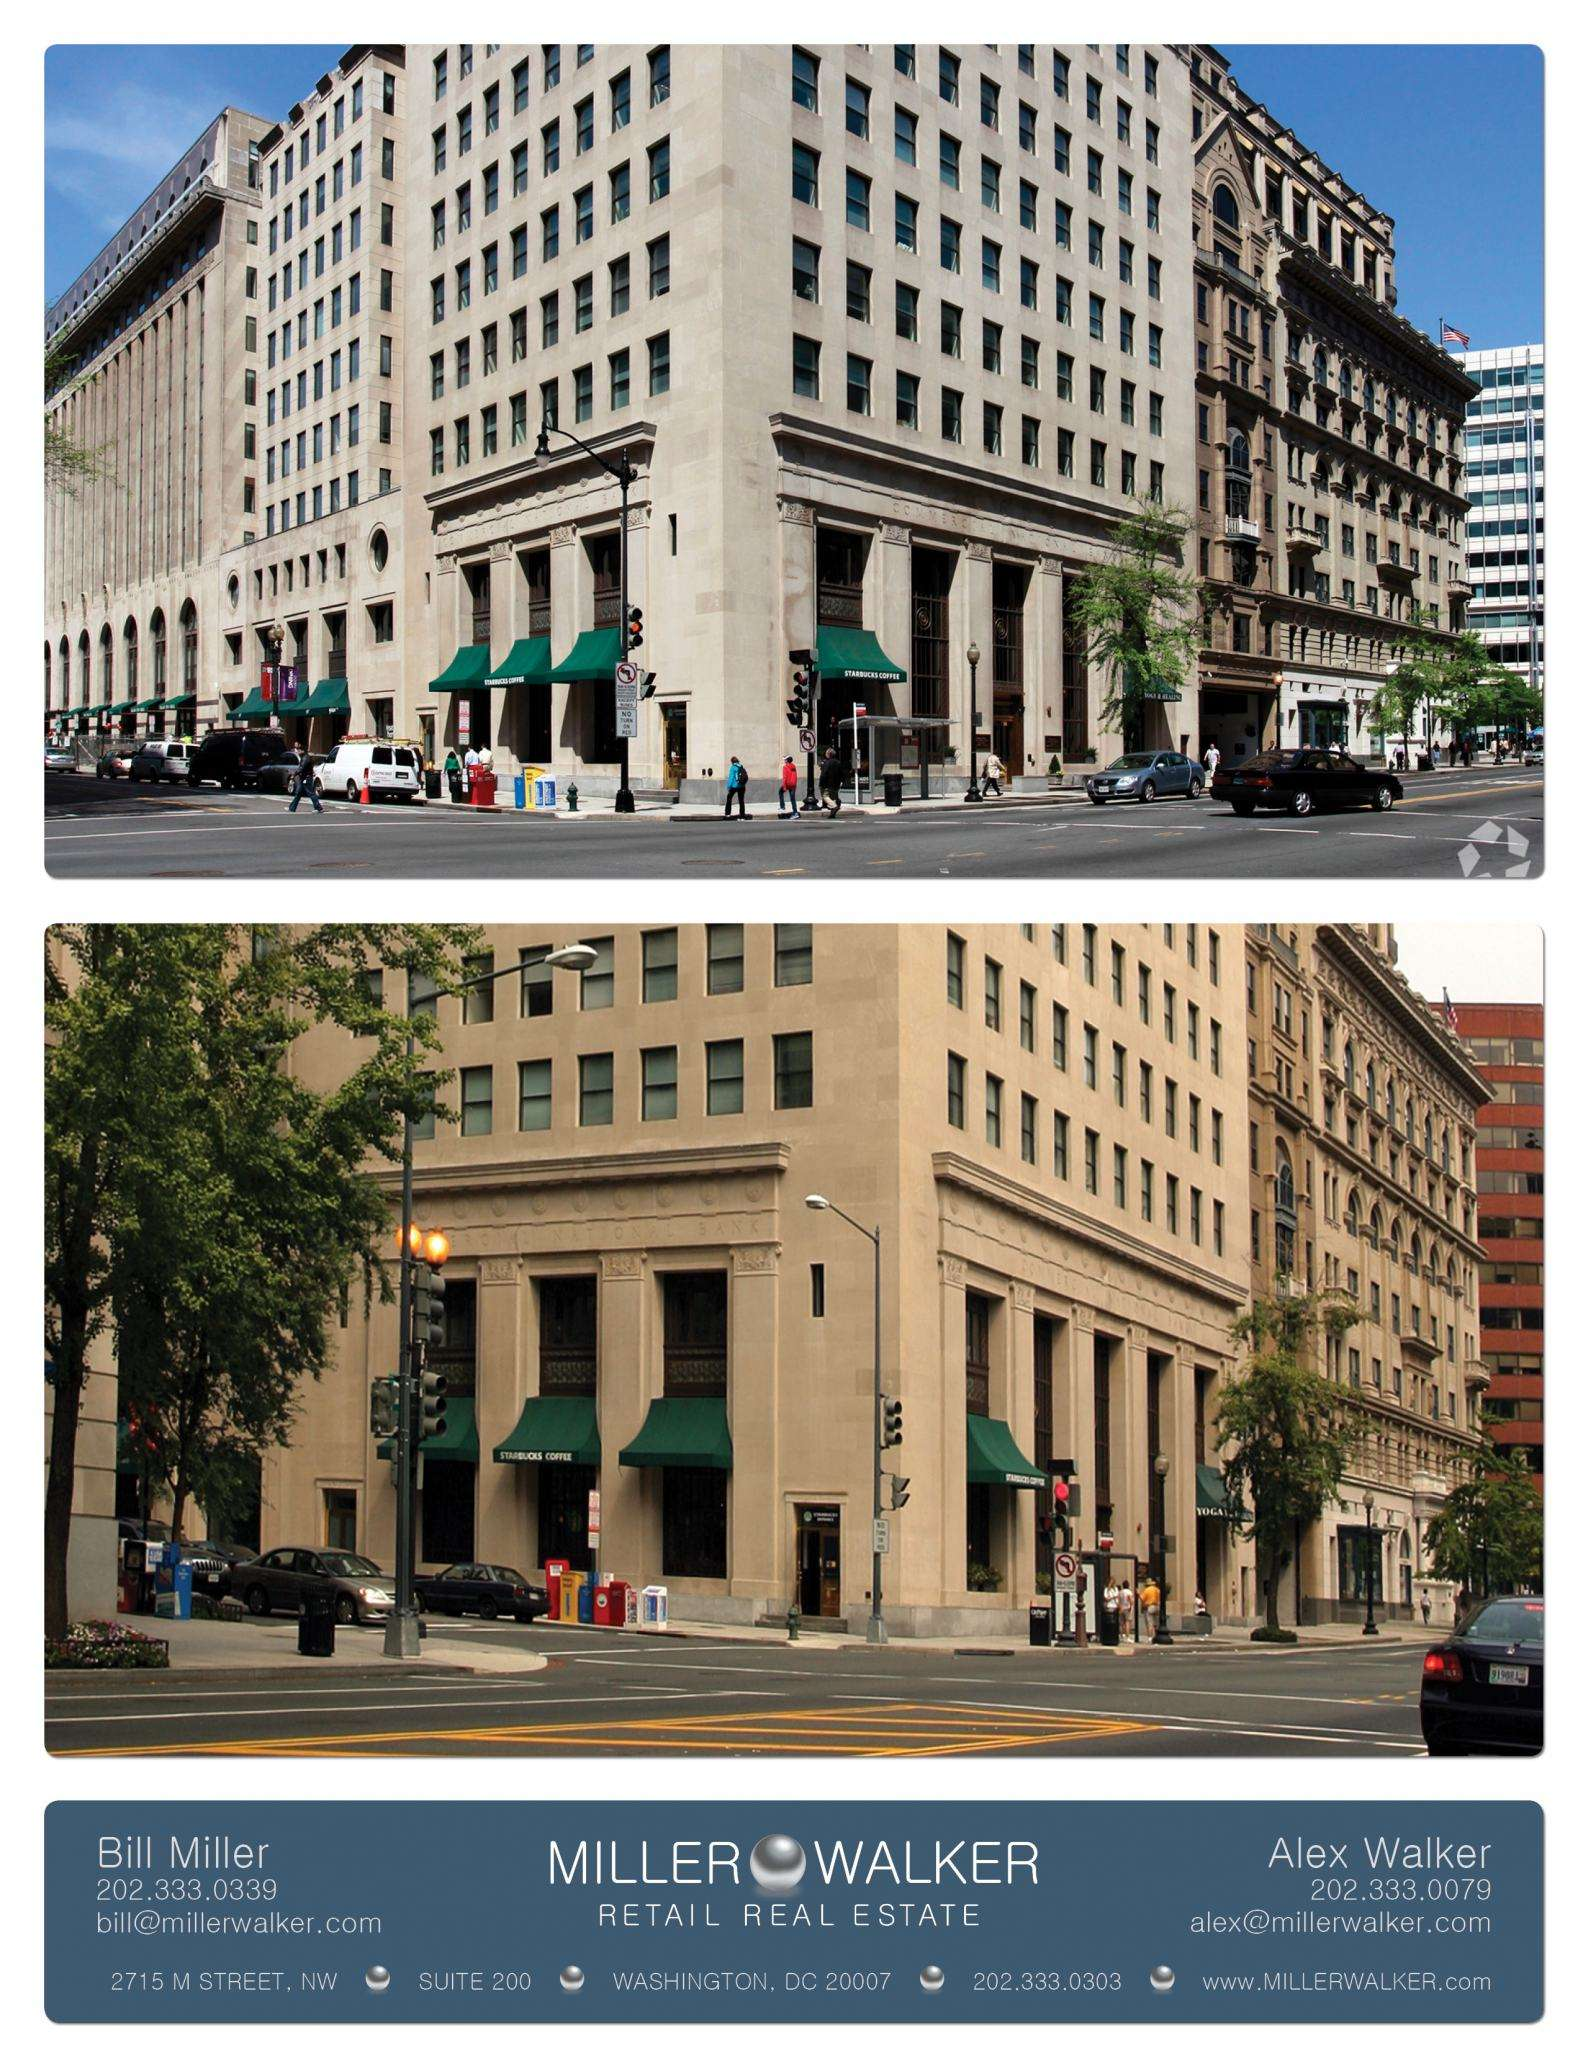 Retail Space for Lease DC - 700 14th ST, NW restaurant space for lease - East End, Penn Quarter